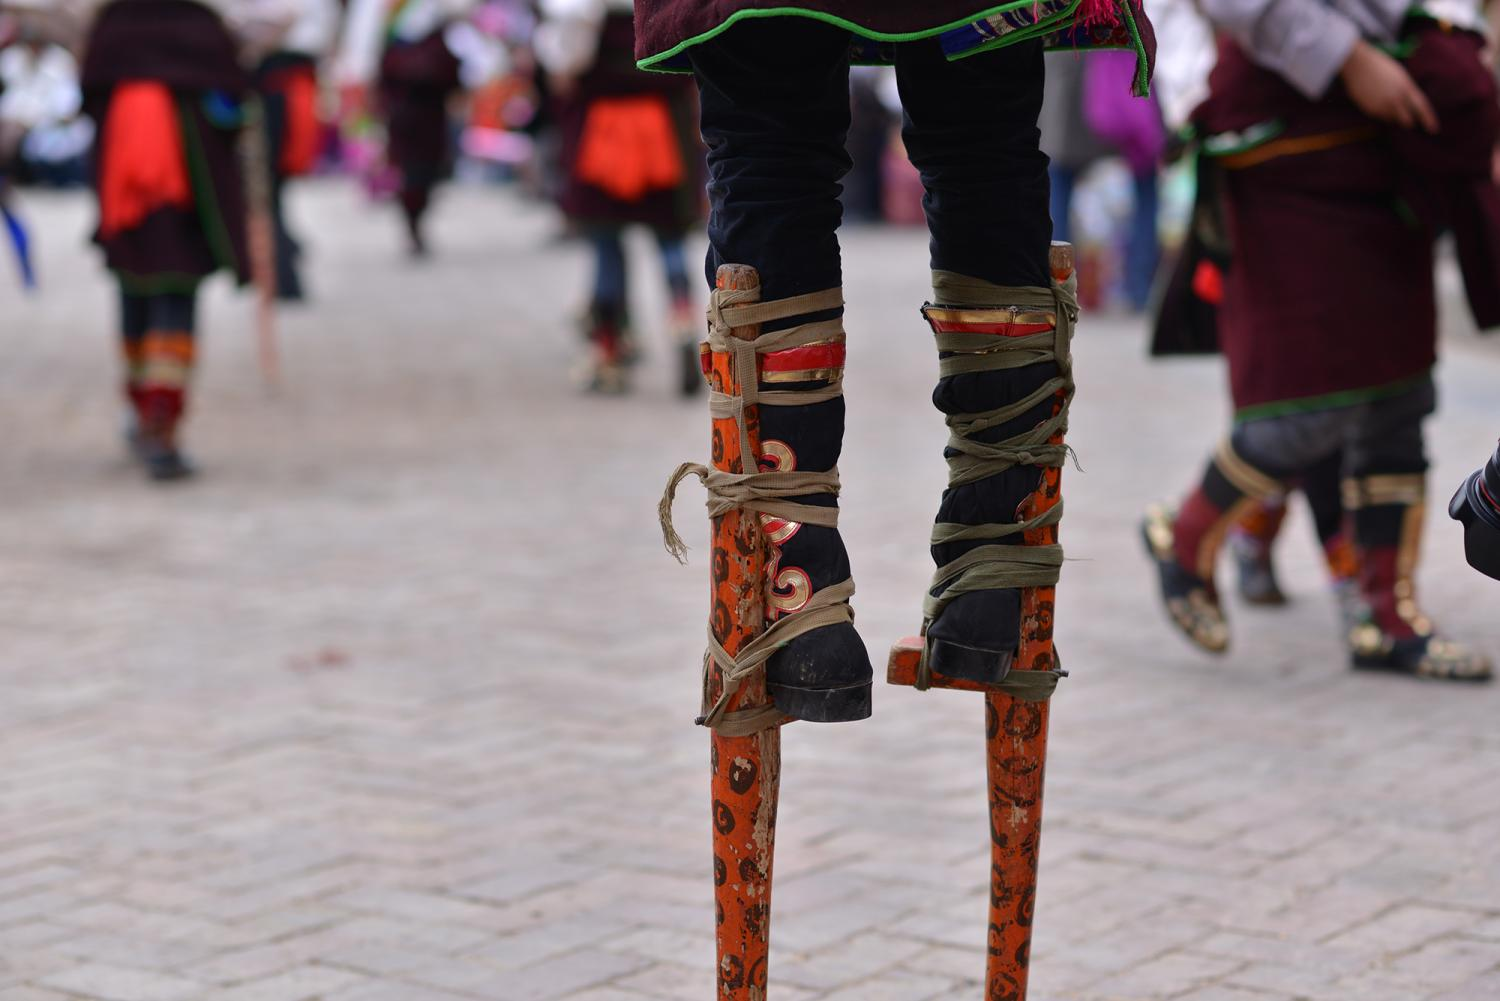 """A young man wears stilts as he dances around the courtyard on stilts or """"wooden feet"""" called Kang hung (Rkang shing, རྐང་ཤིང་)."""